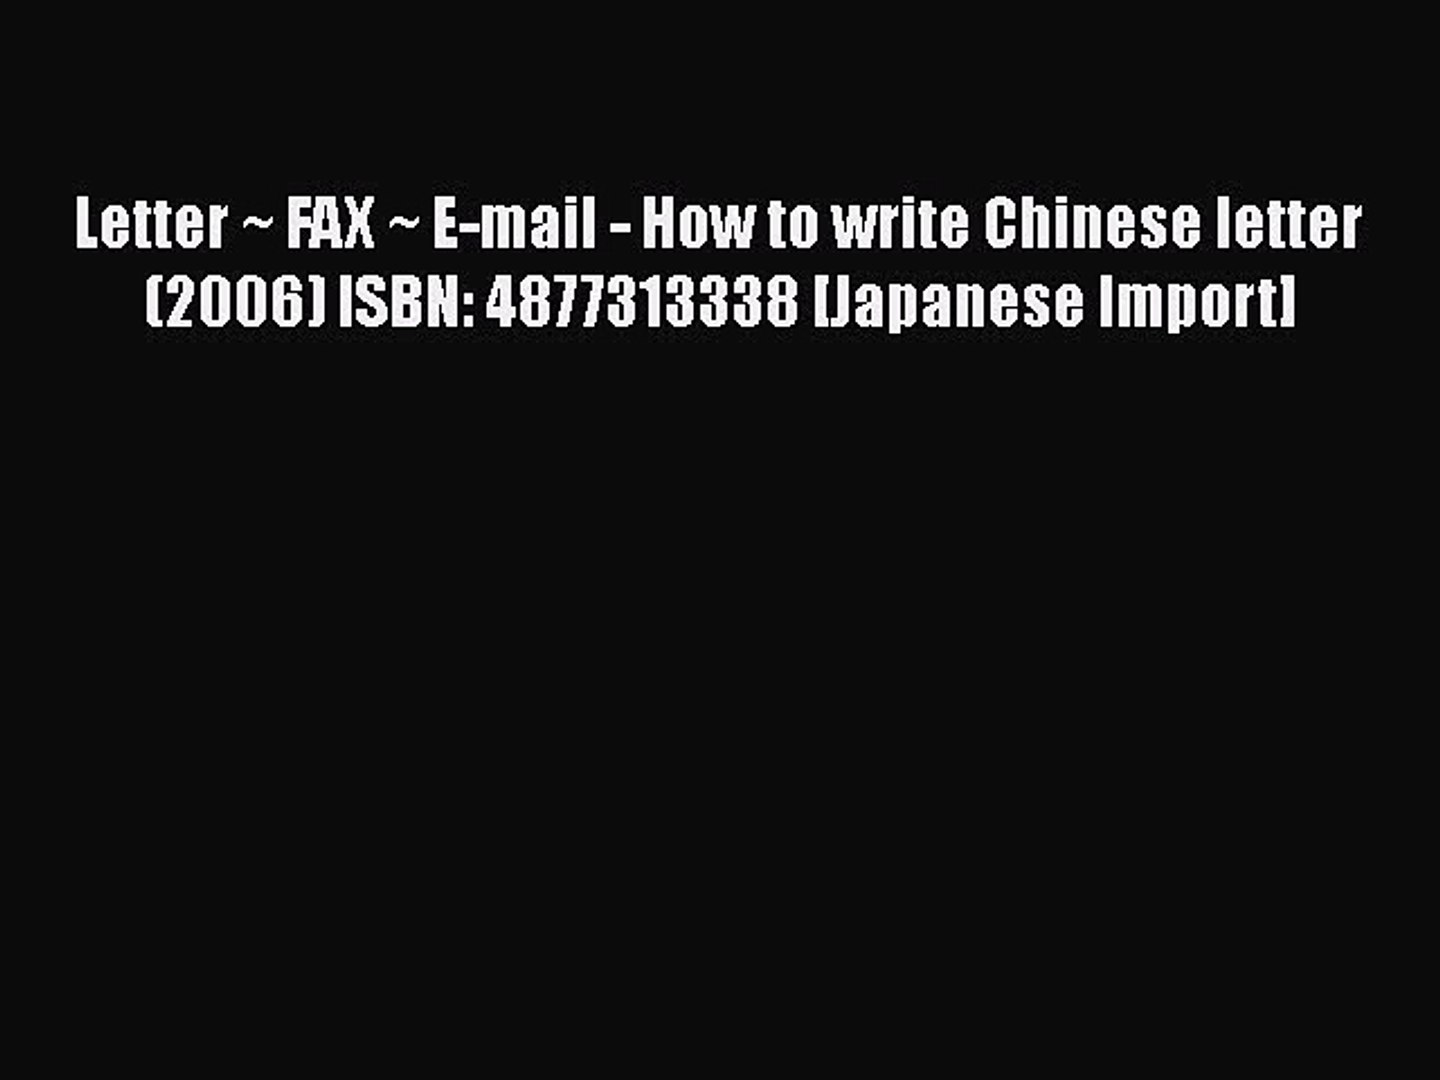 [PDF] Letter ~ FAX ~ E-mail - How to write Chinese letter (2006) ISBN: 4877313338 [Japanese